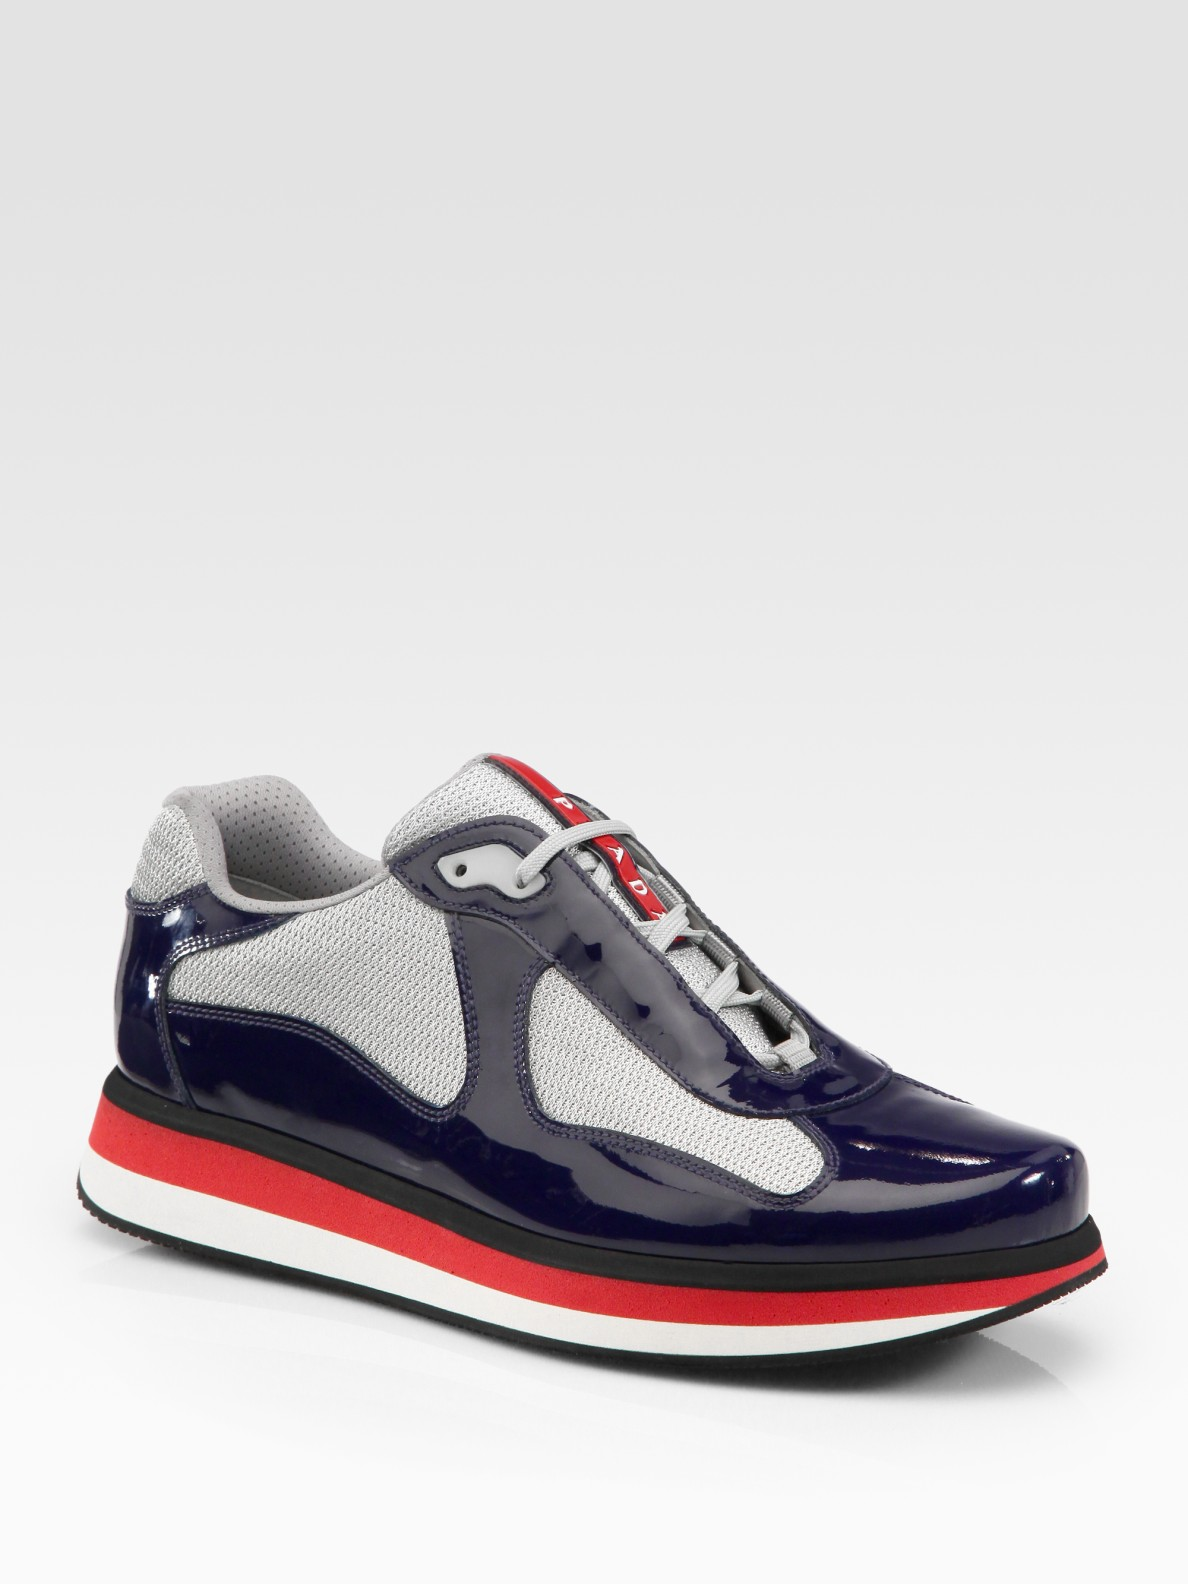 PradaAmerica's Cup Patent Leather Patchwork Sneakers w8mRISiF